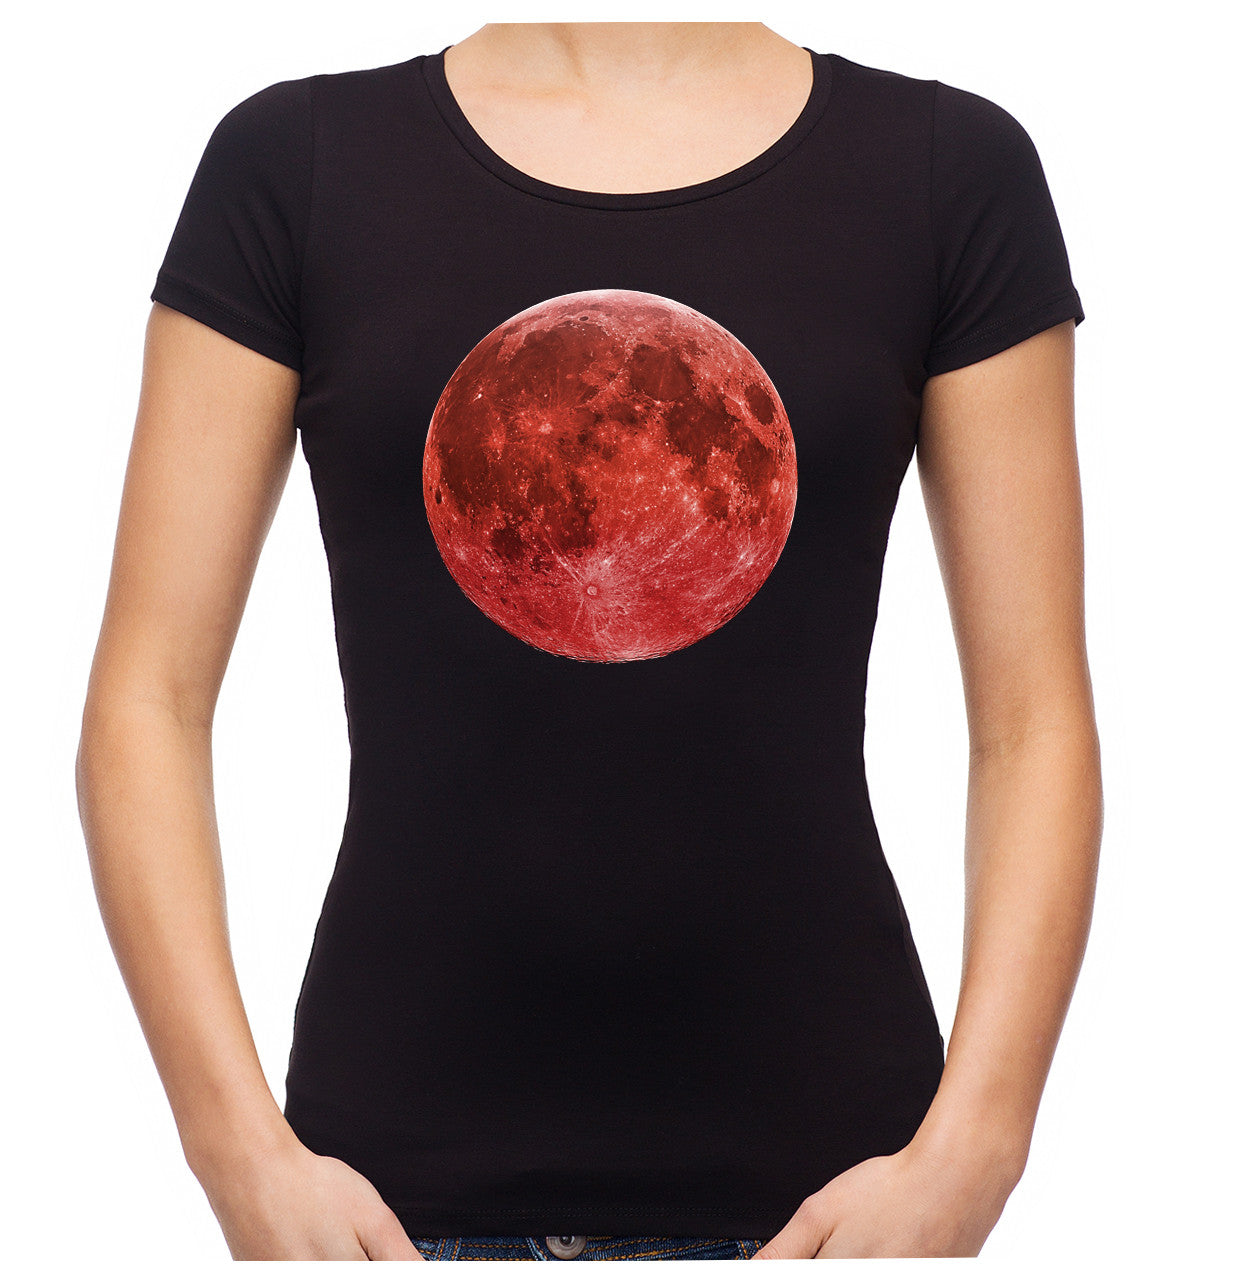 Full Red Blood Moon Women's Babydoll Shirt Alternative Occult Clothing